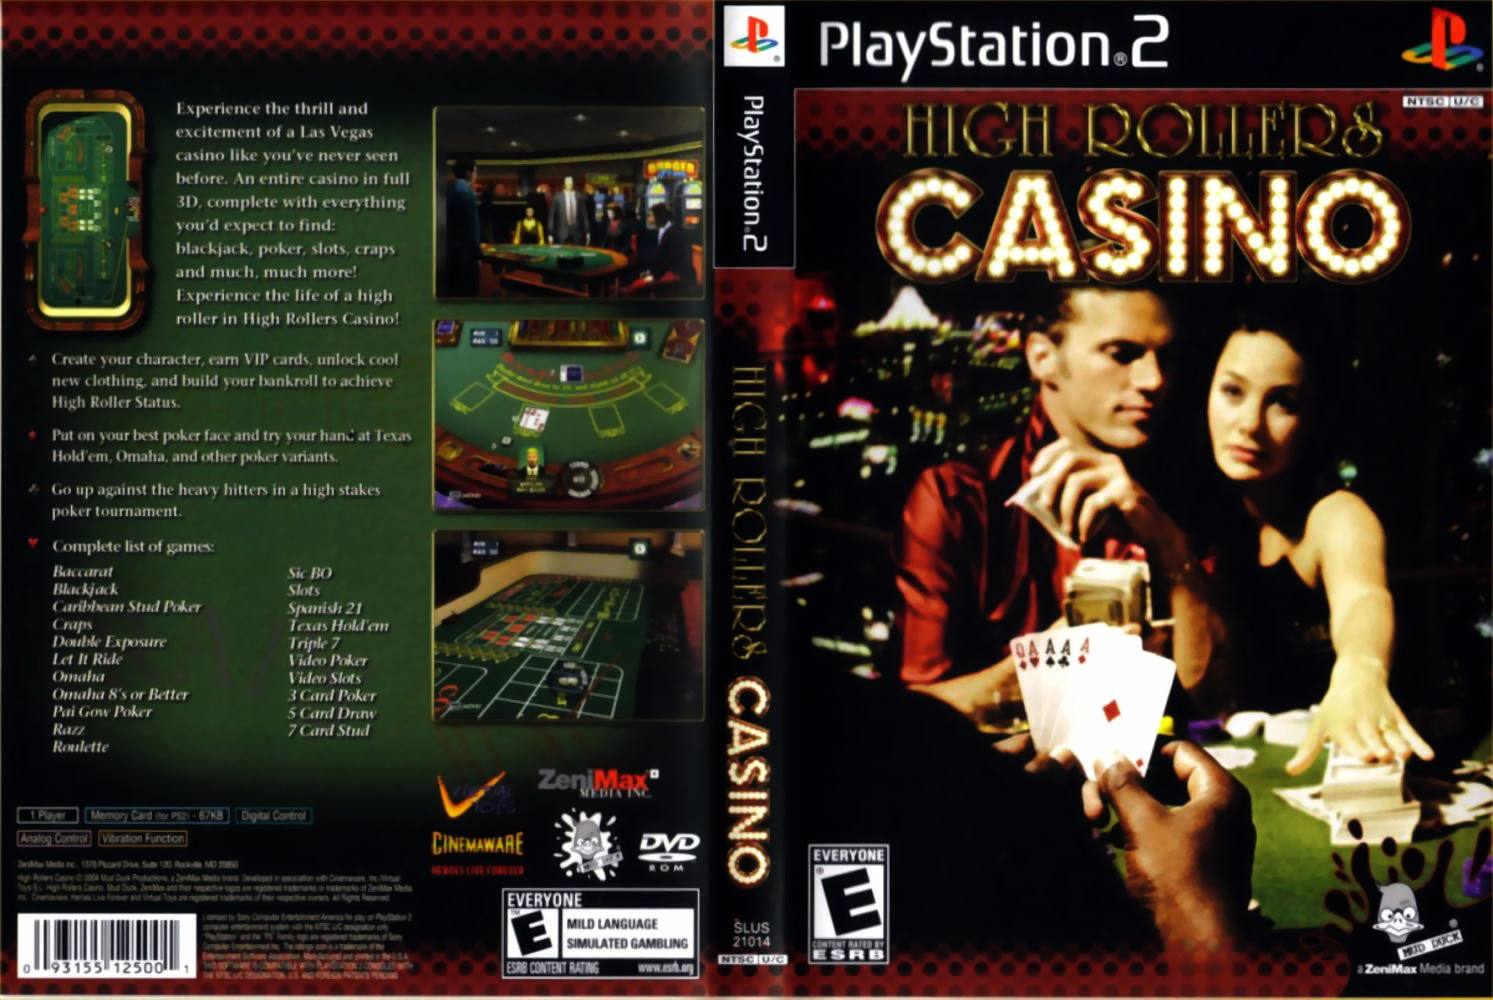 watch casino online free 1995 golden online casino